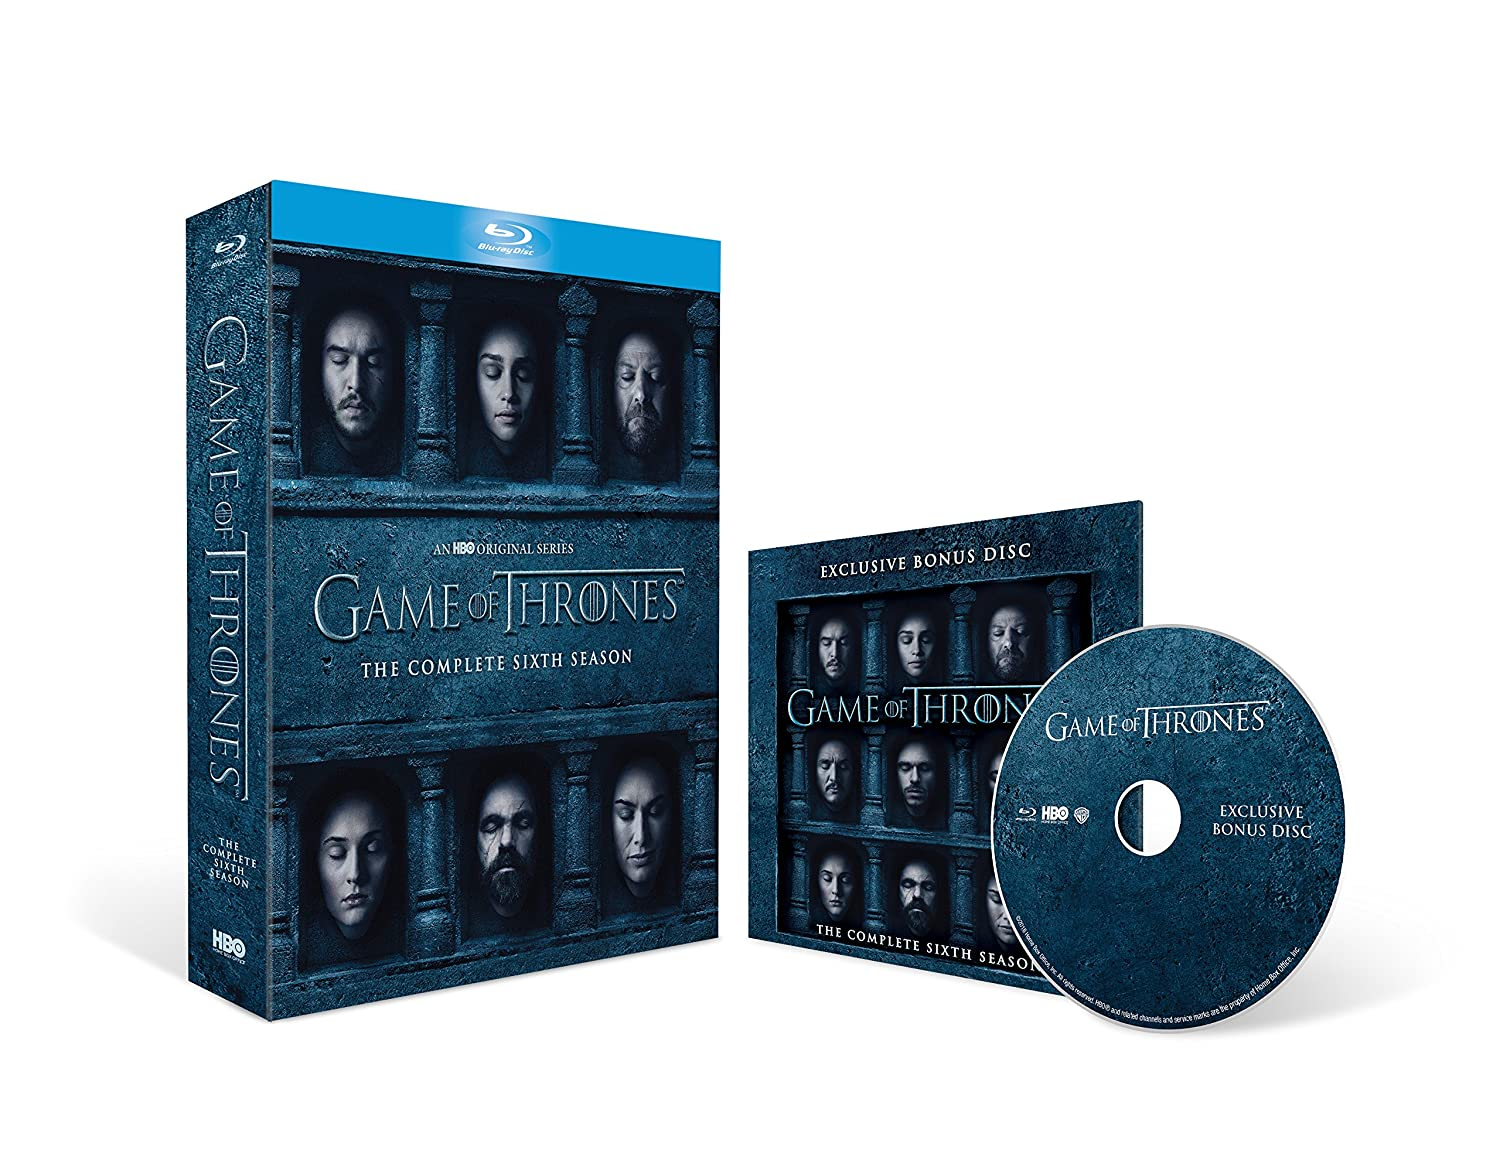 d64c2e088 Game of Thrones - Season 6 with Bonus Disc Exclusive to Amazon.co.uk  Blu-ray Region Free  Amazon.co.uk  Peter Dinklage